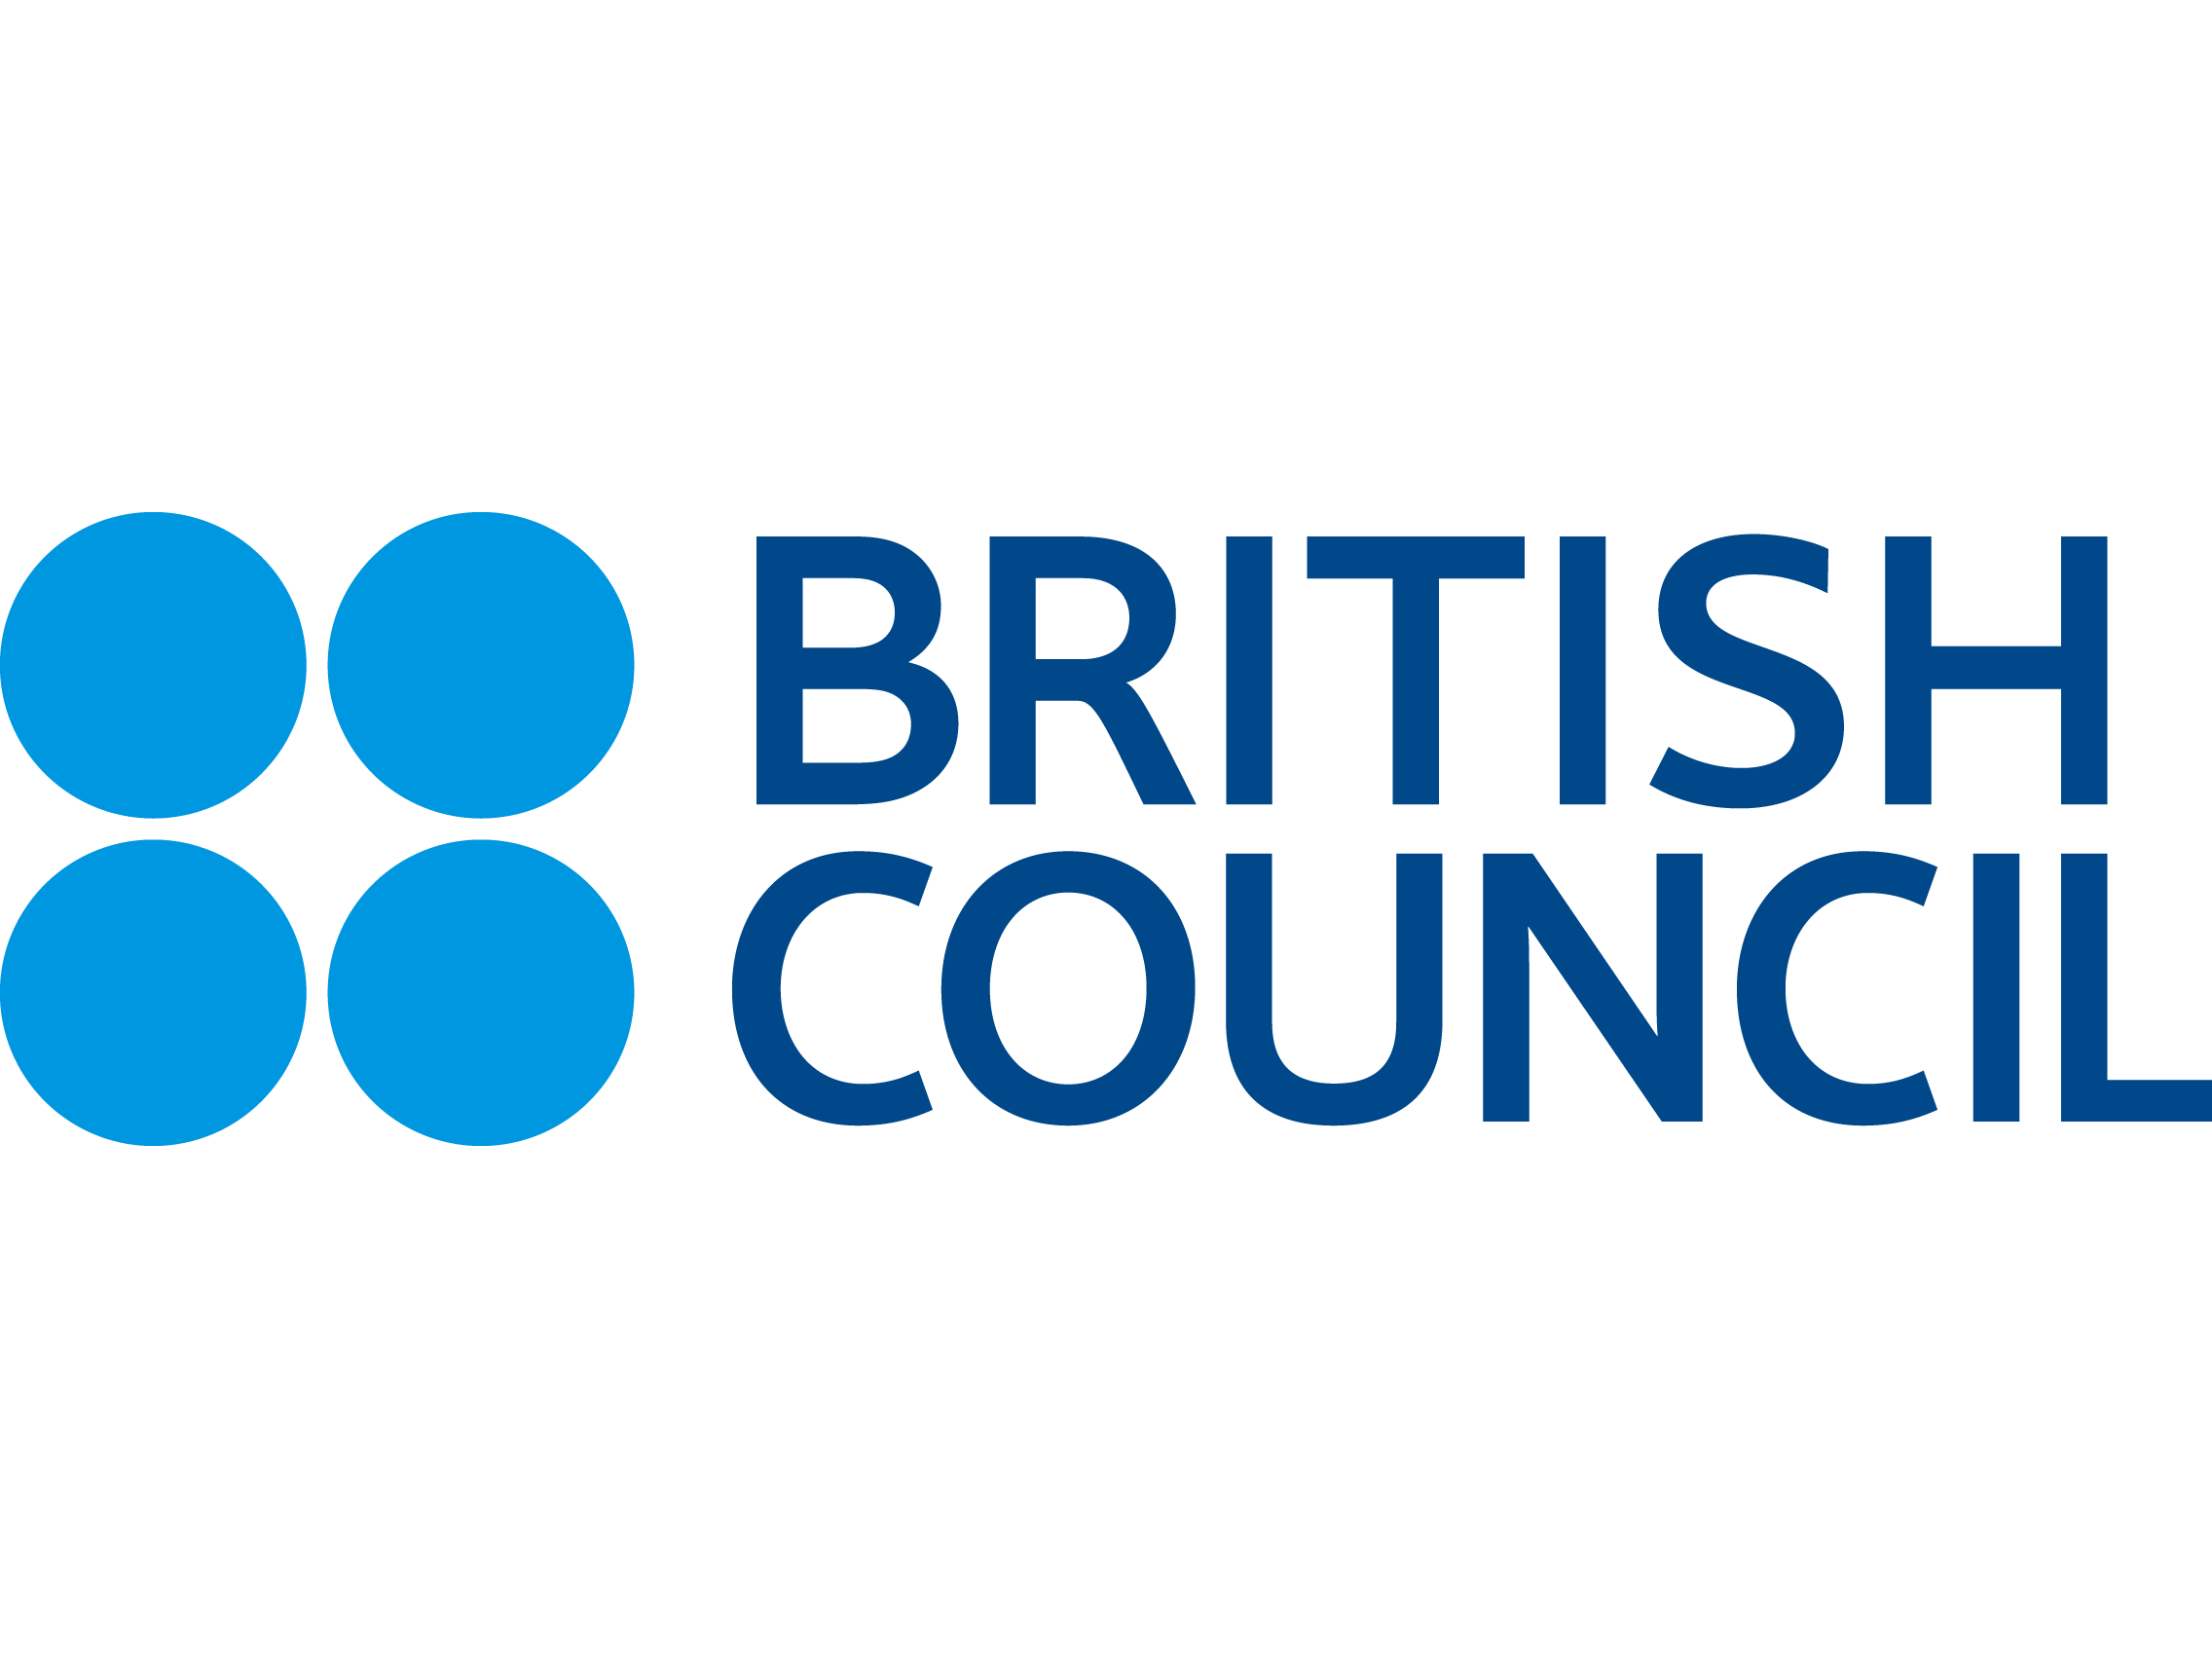 British-Council-logo-and-wordmark